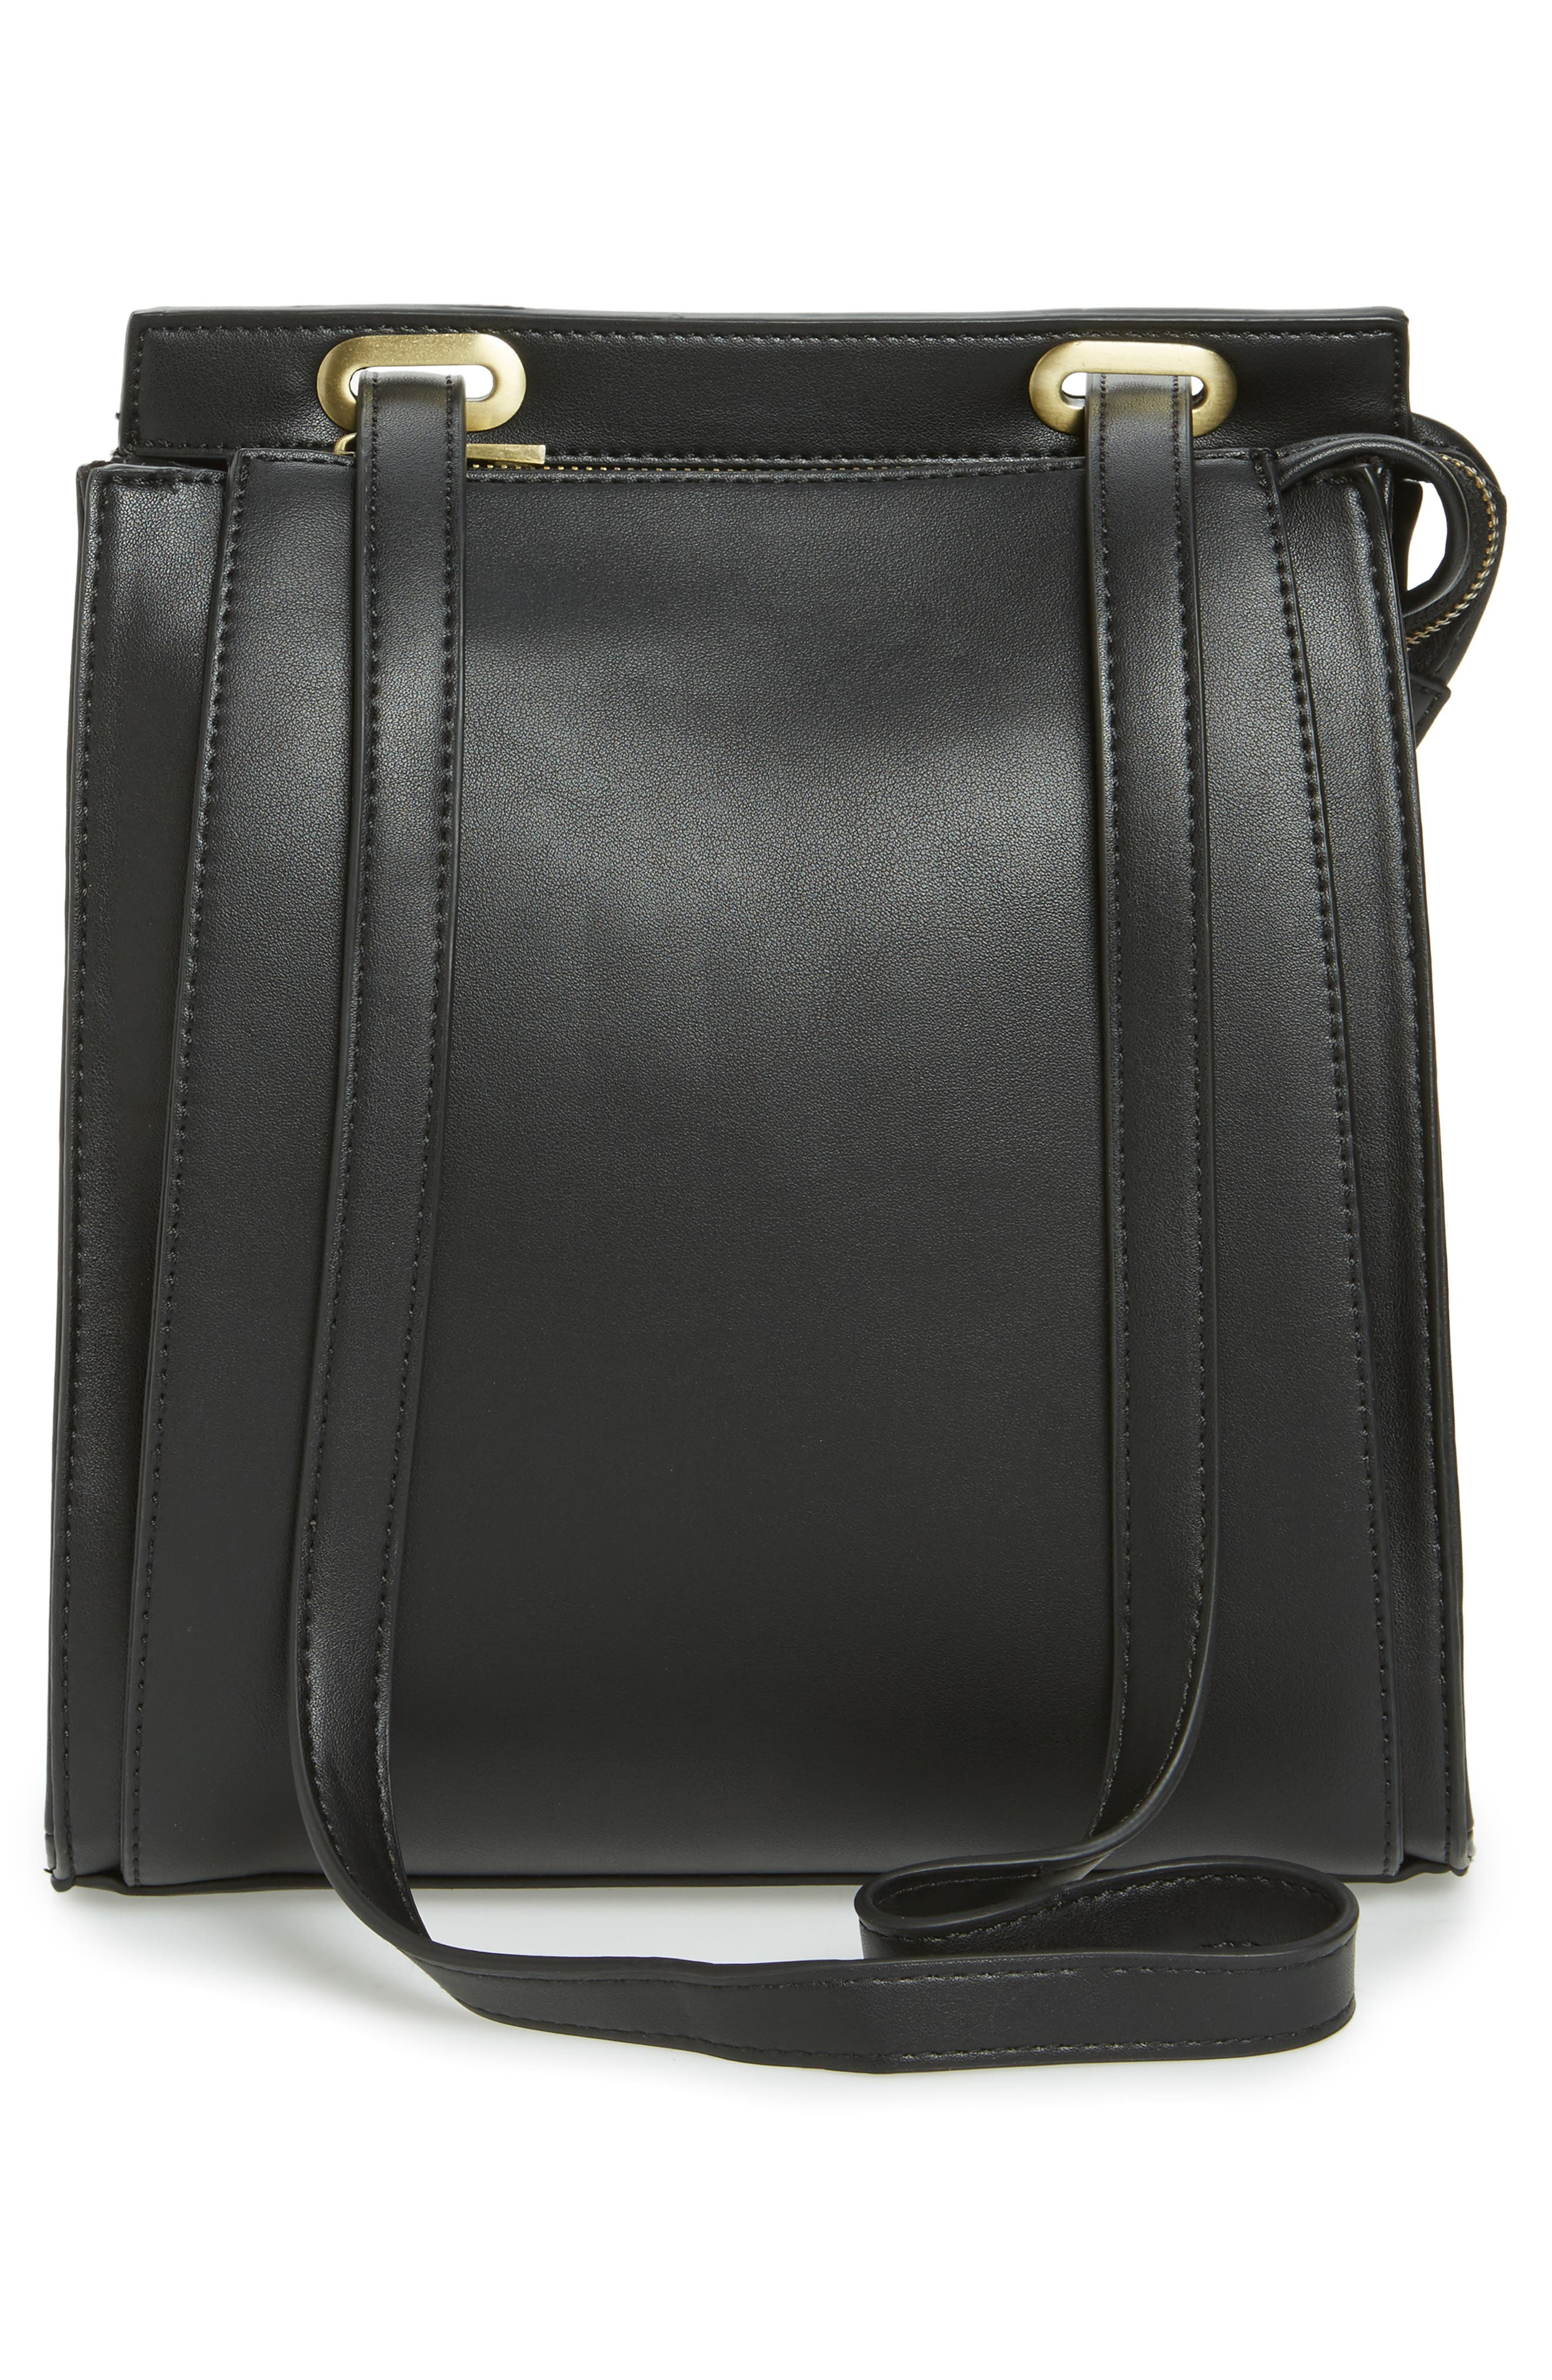 STREET LEVEL, Faux Leather Convertible Backpack, Alternate thumbnail 4, color, 002